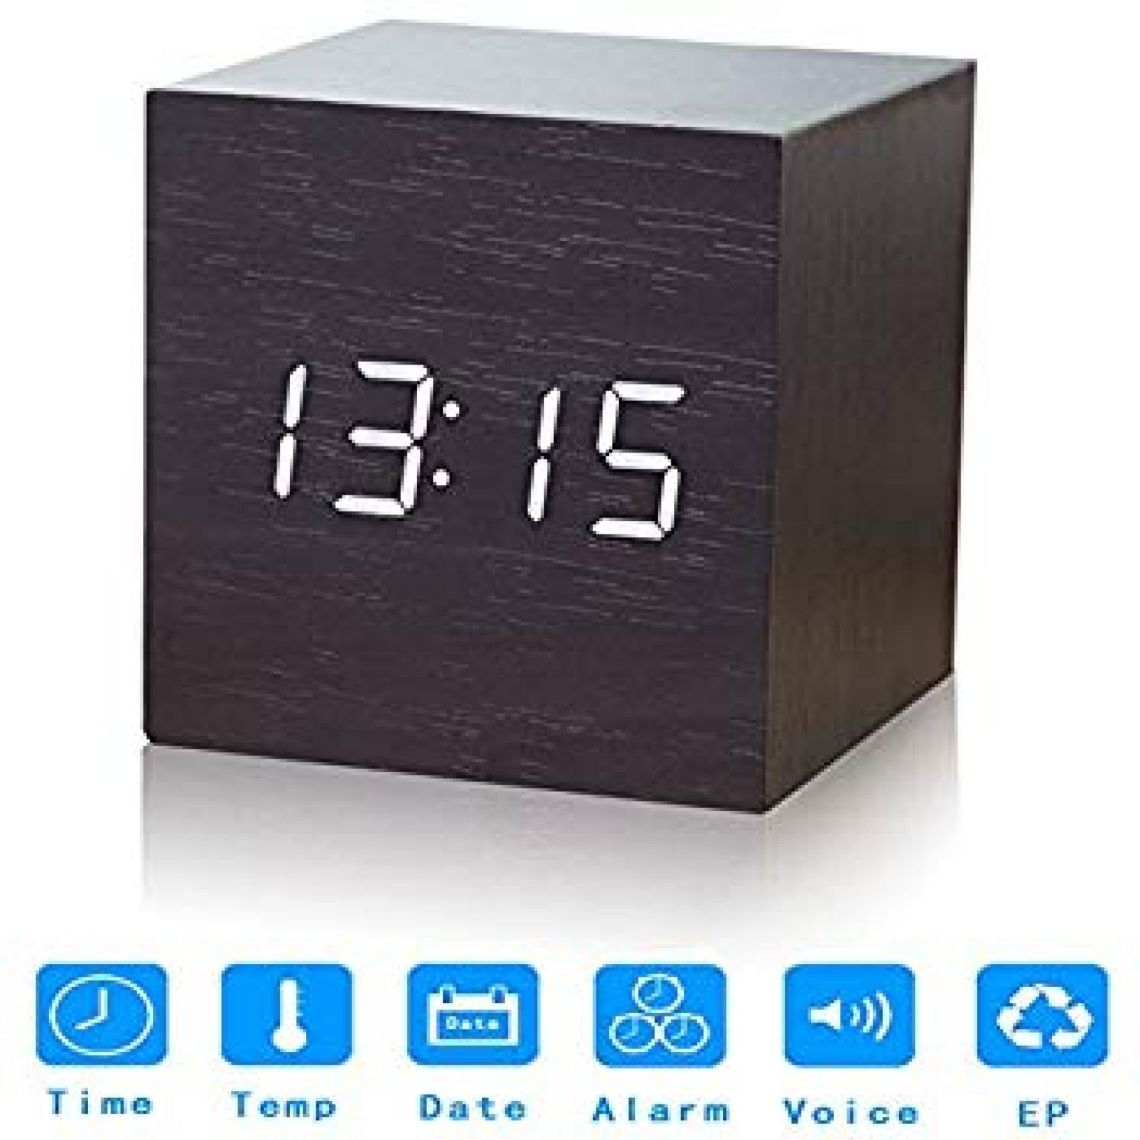 Amazon.com: Nescope Digital Alarm Clock Digital Clock Cube Design Wooden Clock with 12/24Hr 3 Sets of Alarms Temperature Display: Home & Kitchen